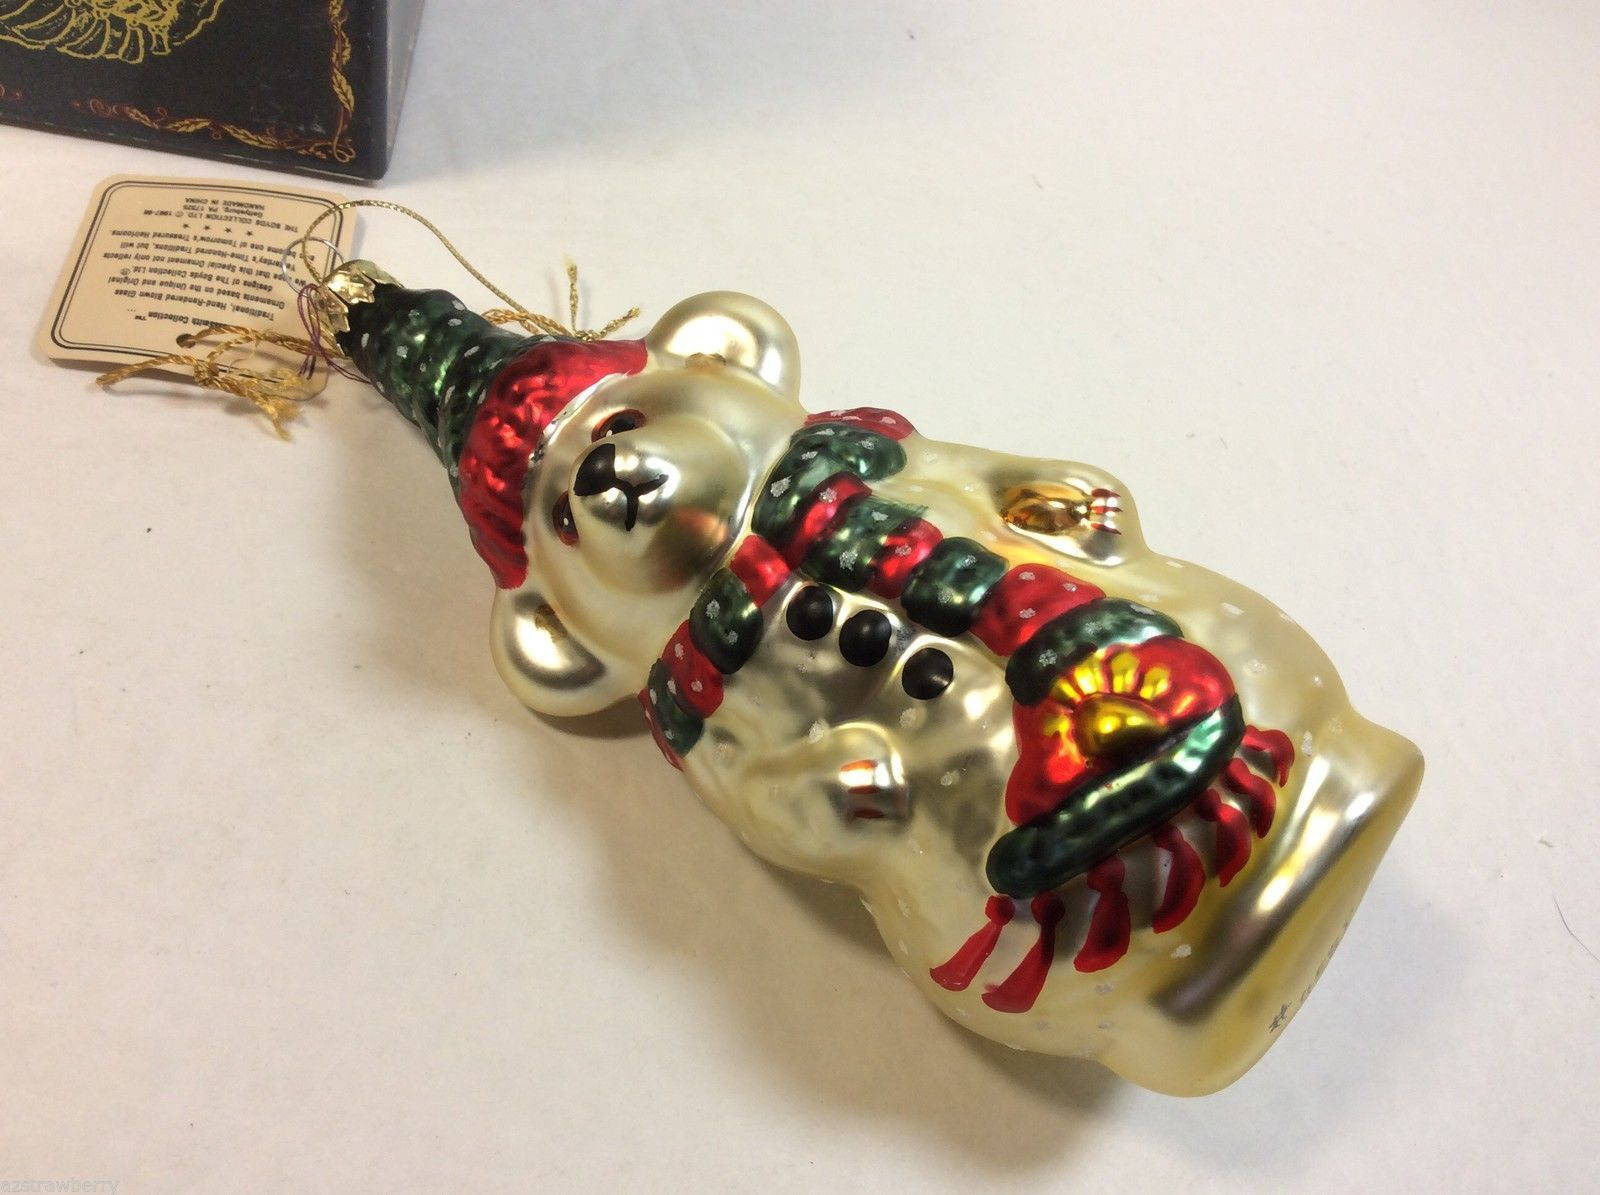 97 98 Boyds Bears Friends Ornament Hand and 50 similar items